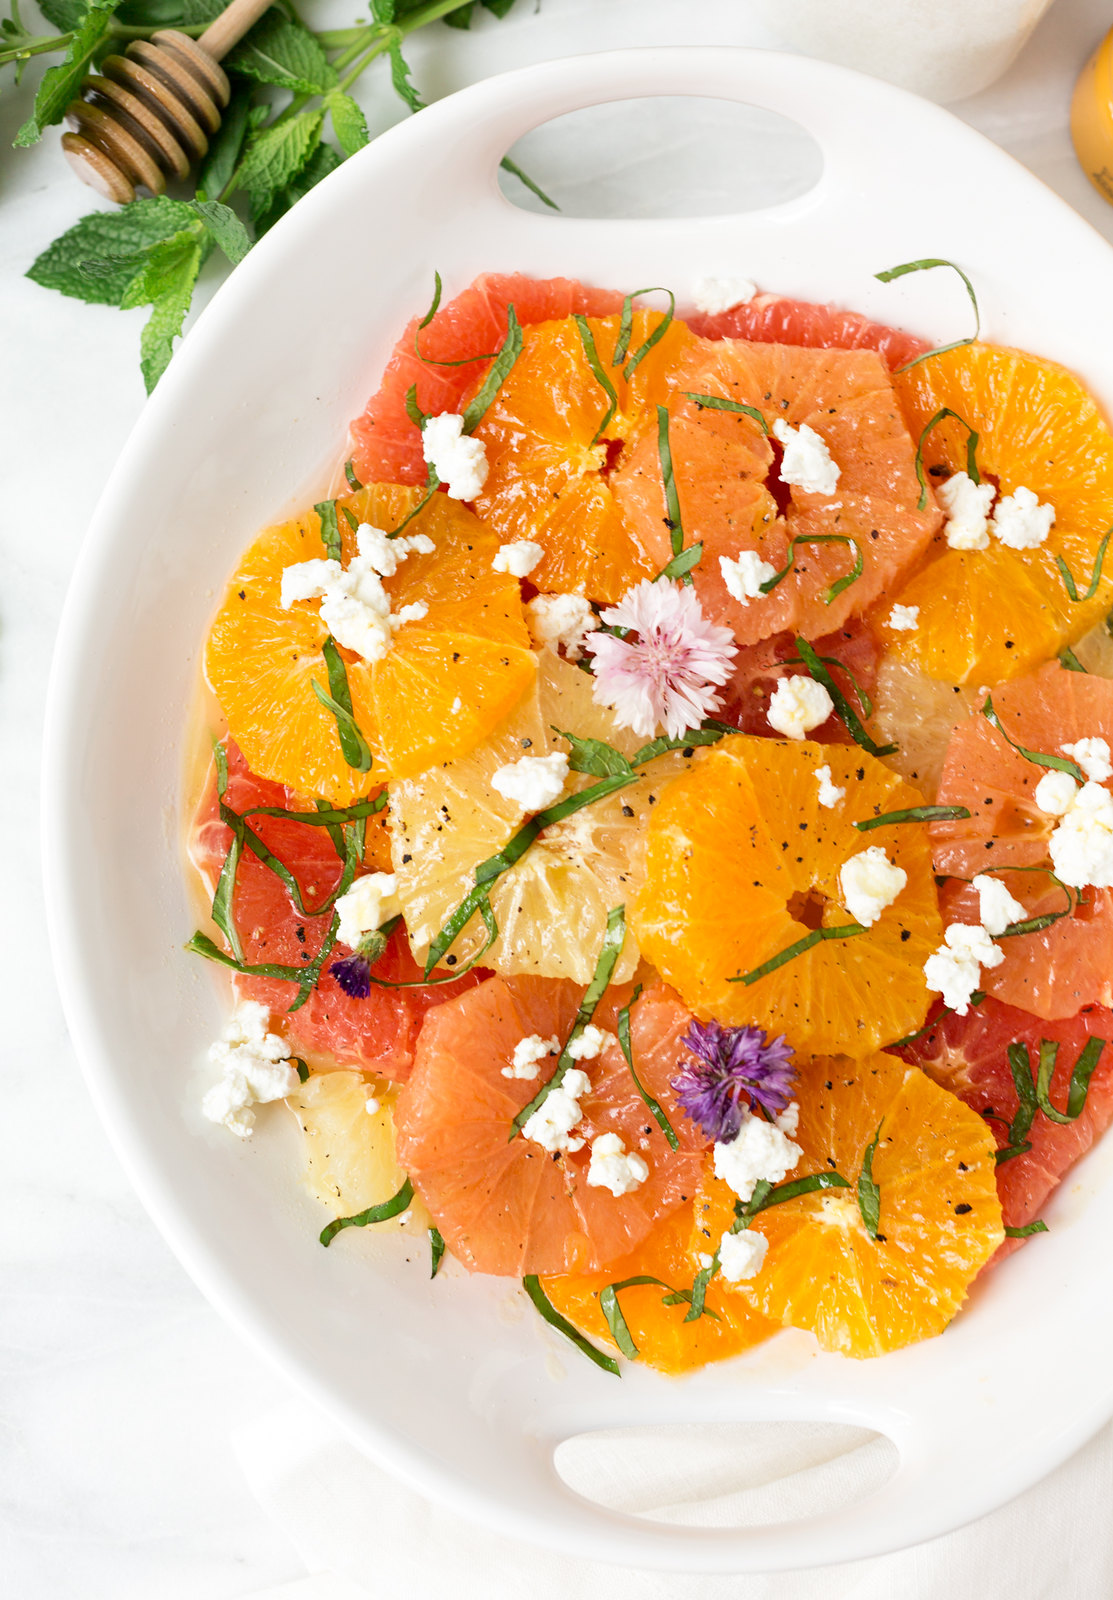 Mixed Citrus Salad with honey balsamic vinaigrette